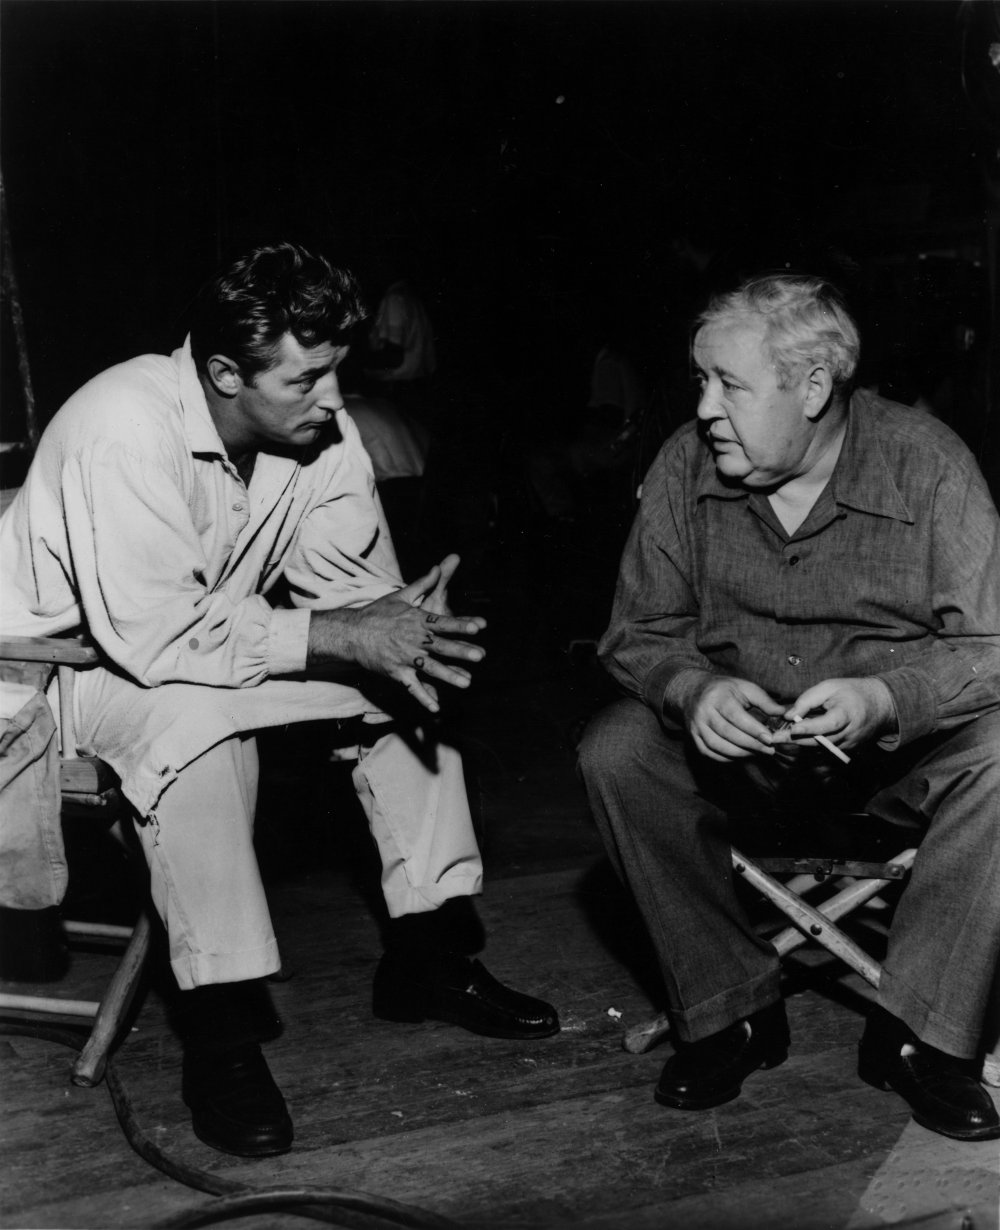 A conversation between Robert Mitchum and his director. Mitchum's character's sinister 'L.O.V.E.' tattoo is clearly visible on his right hand.